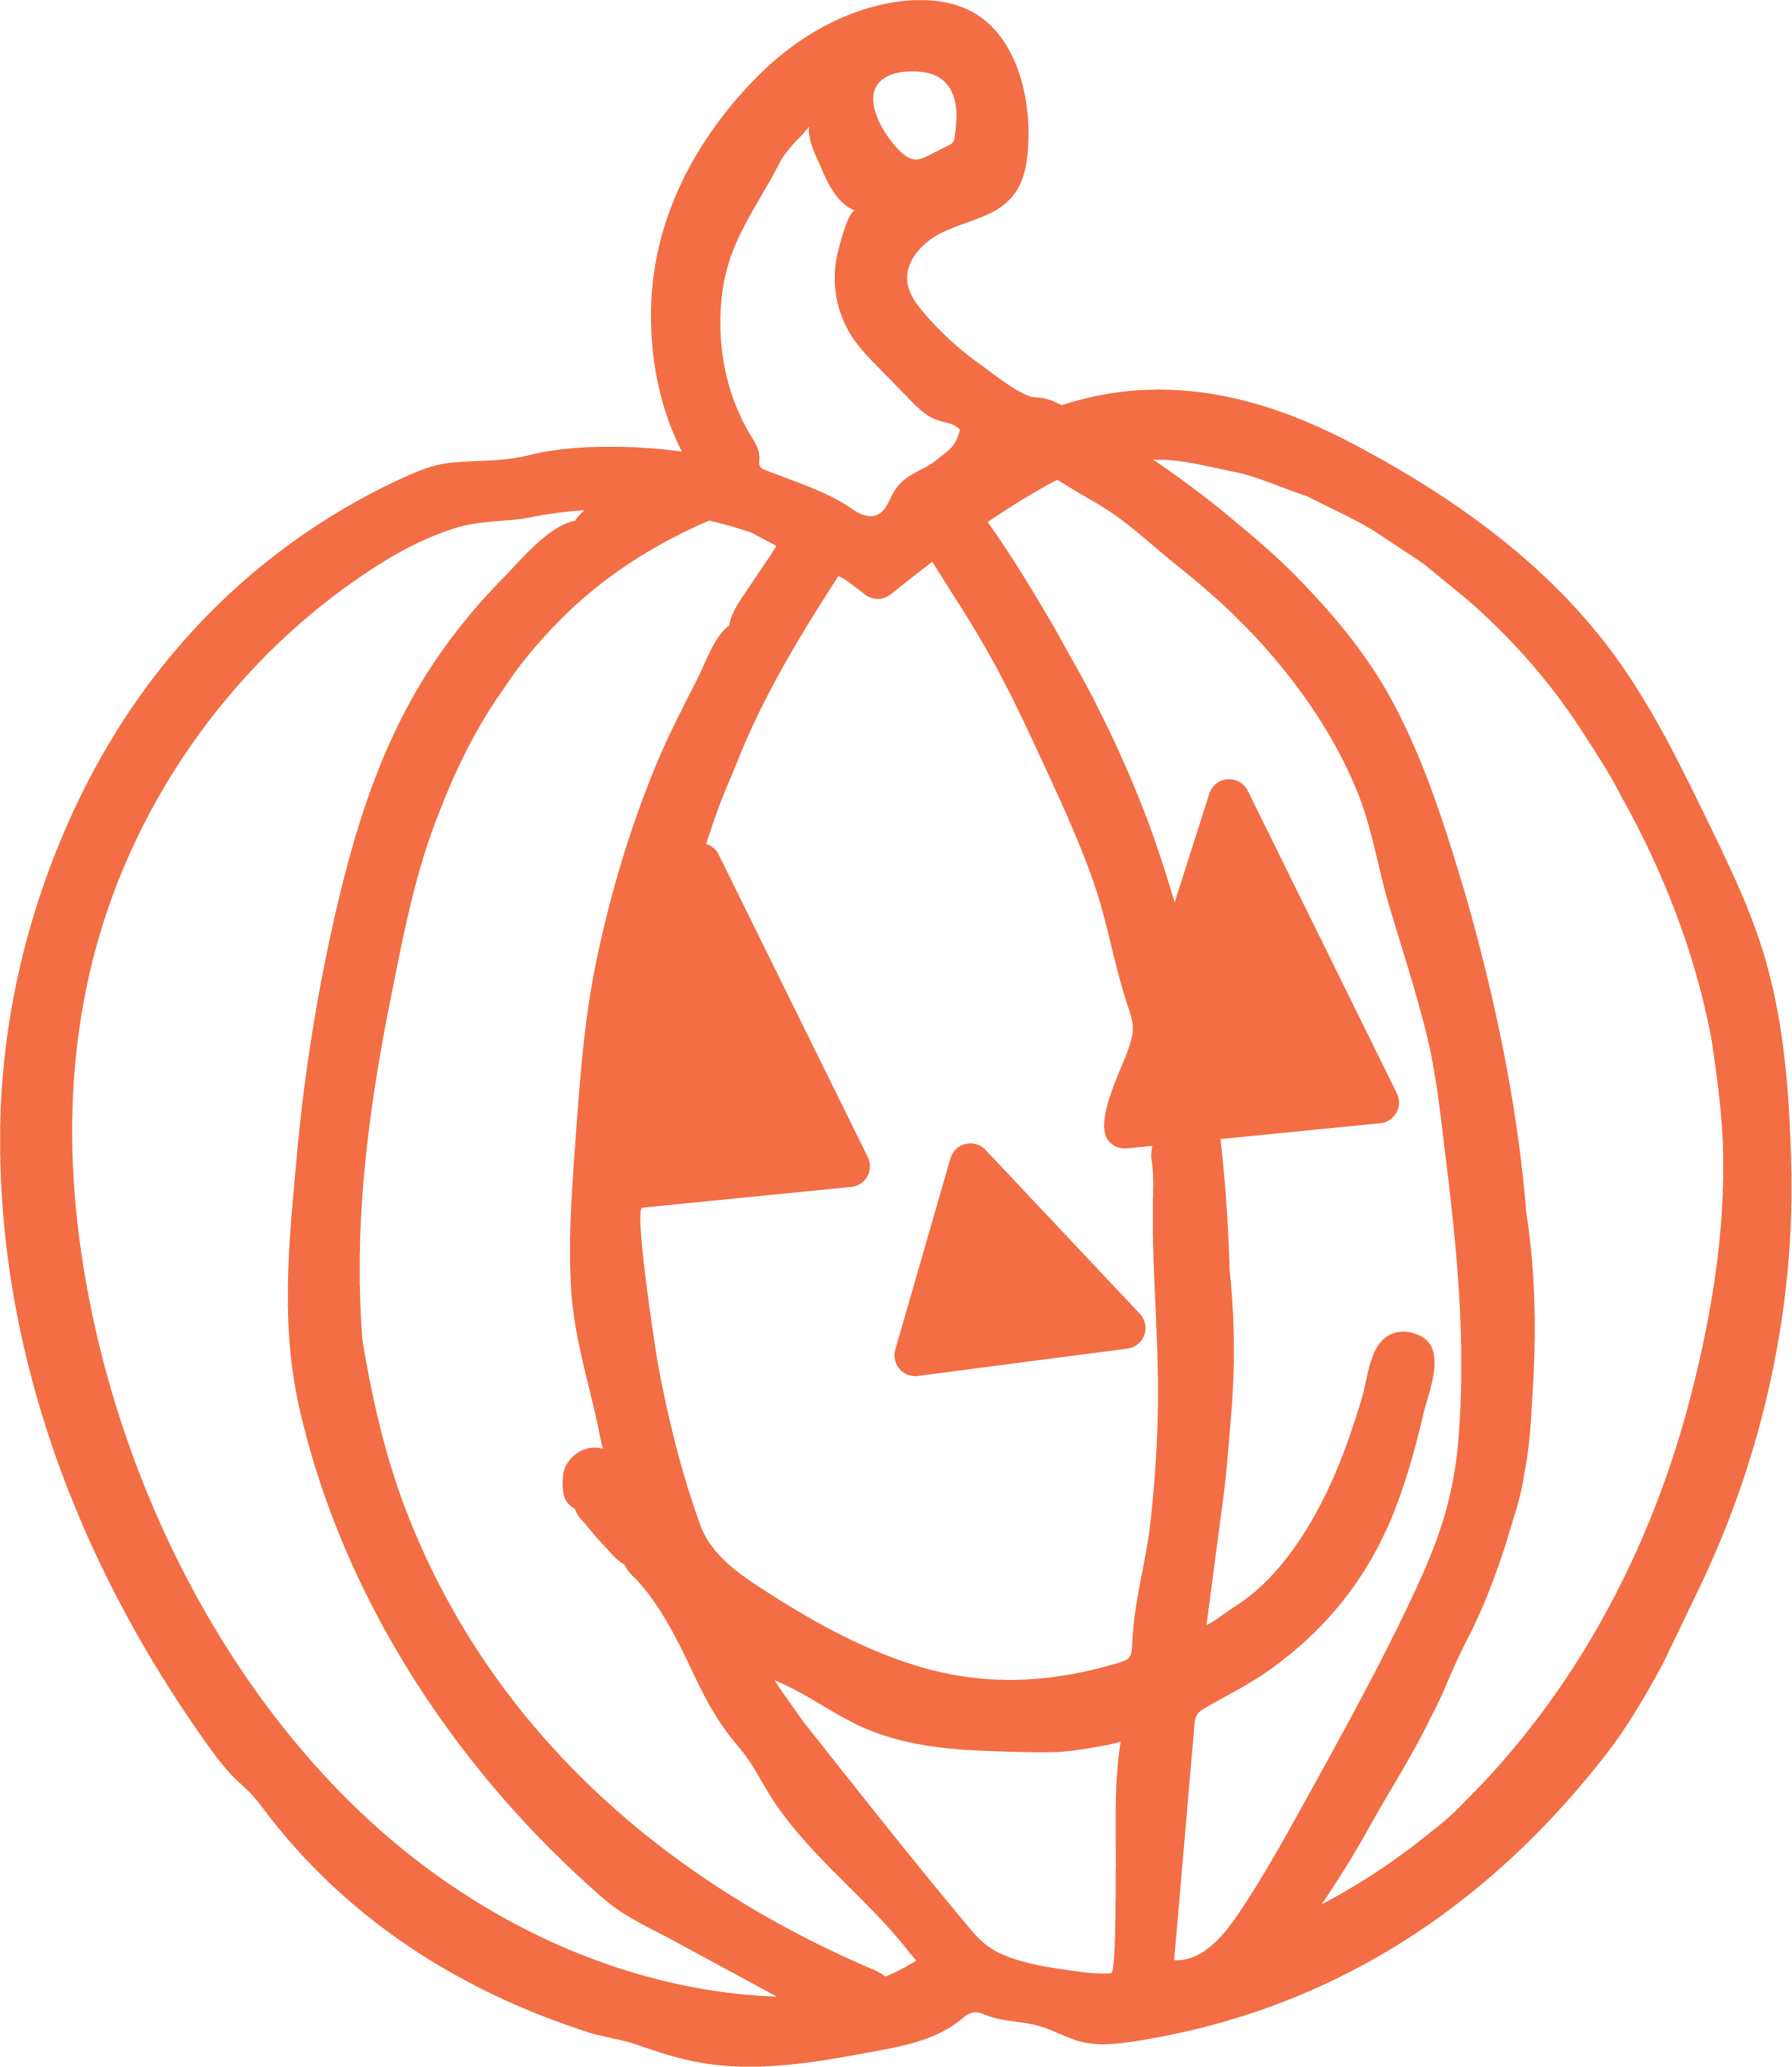 Happy Halloween Pumpkin 2 SVG Cut File